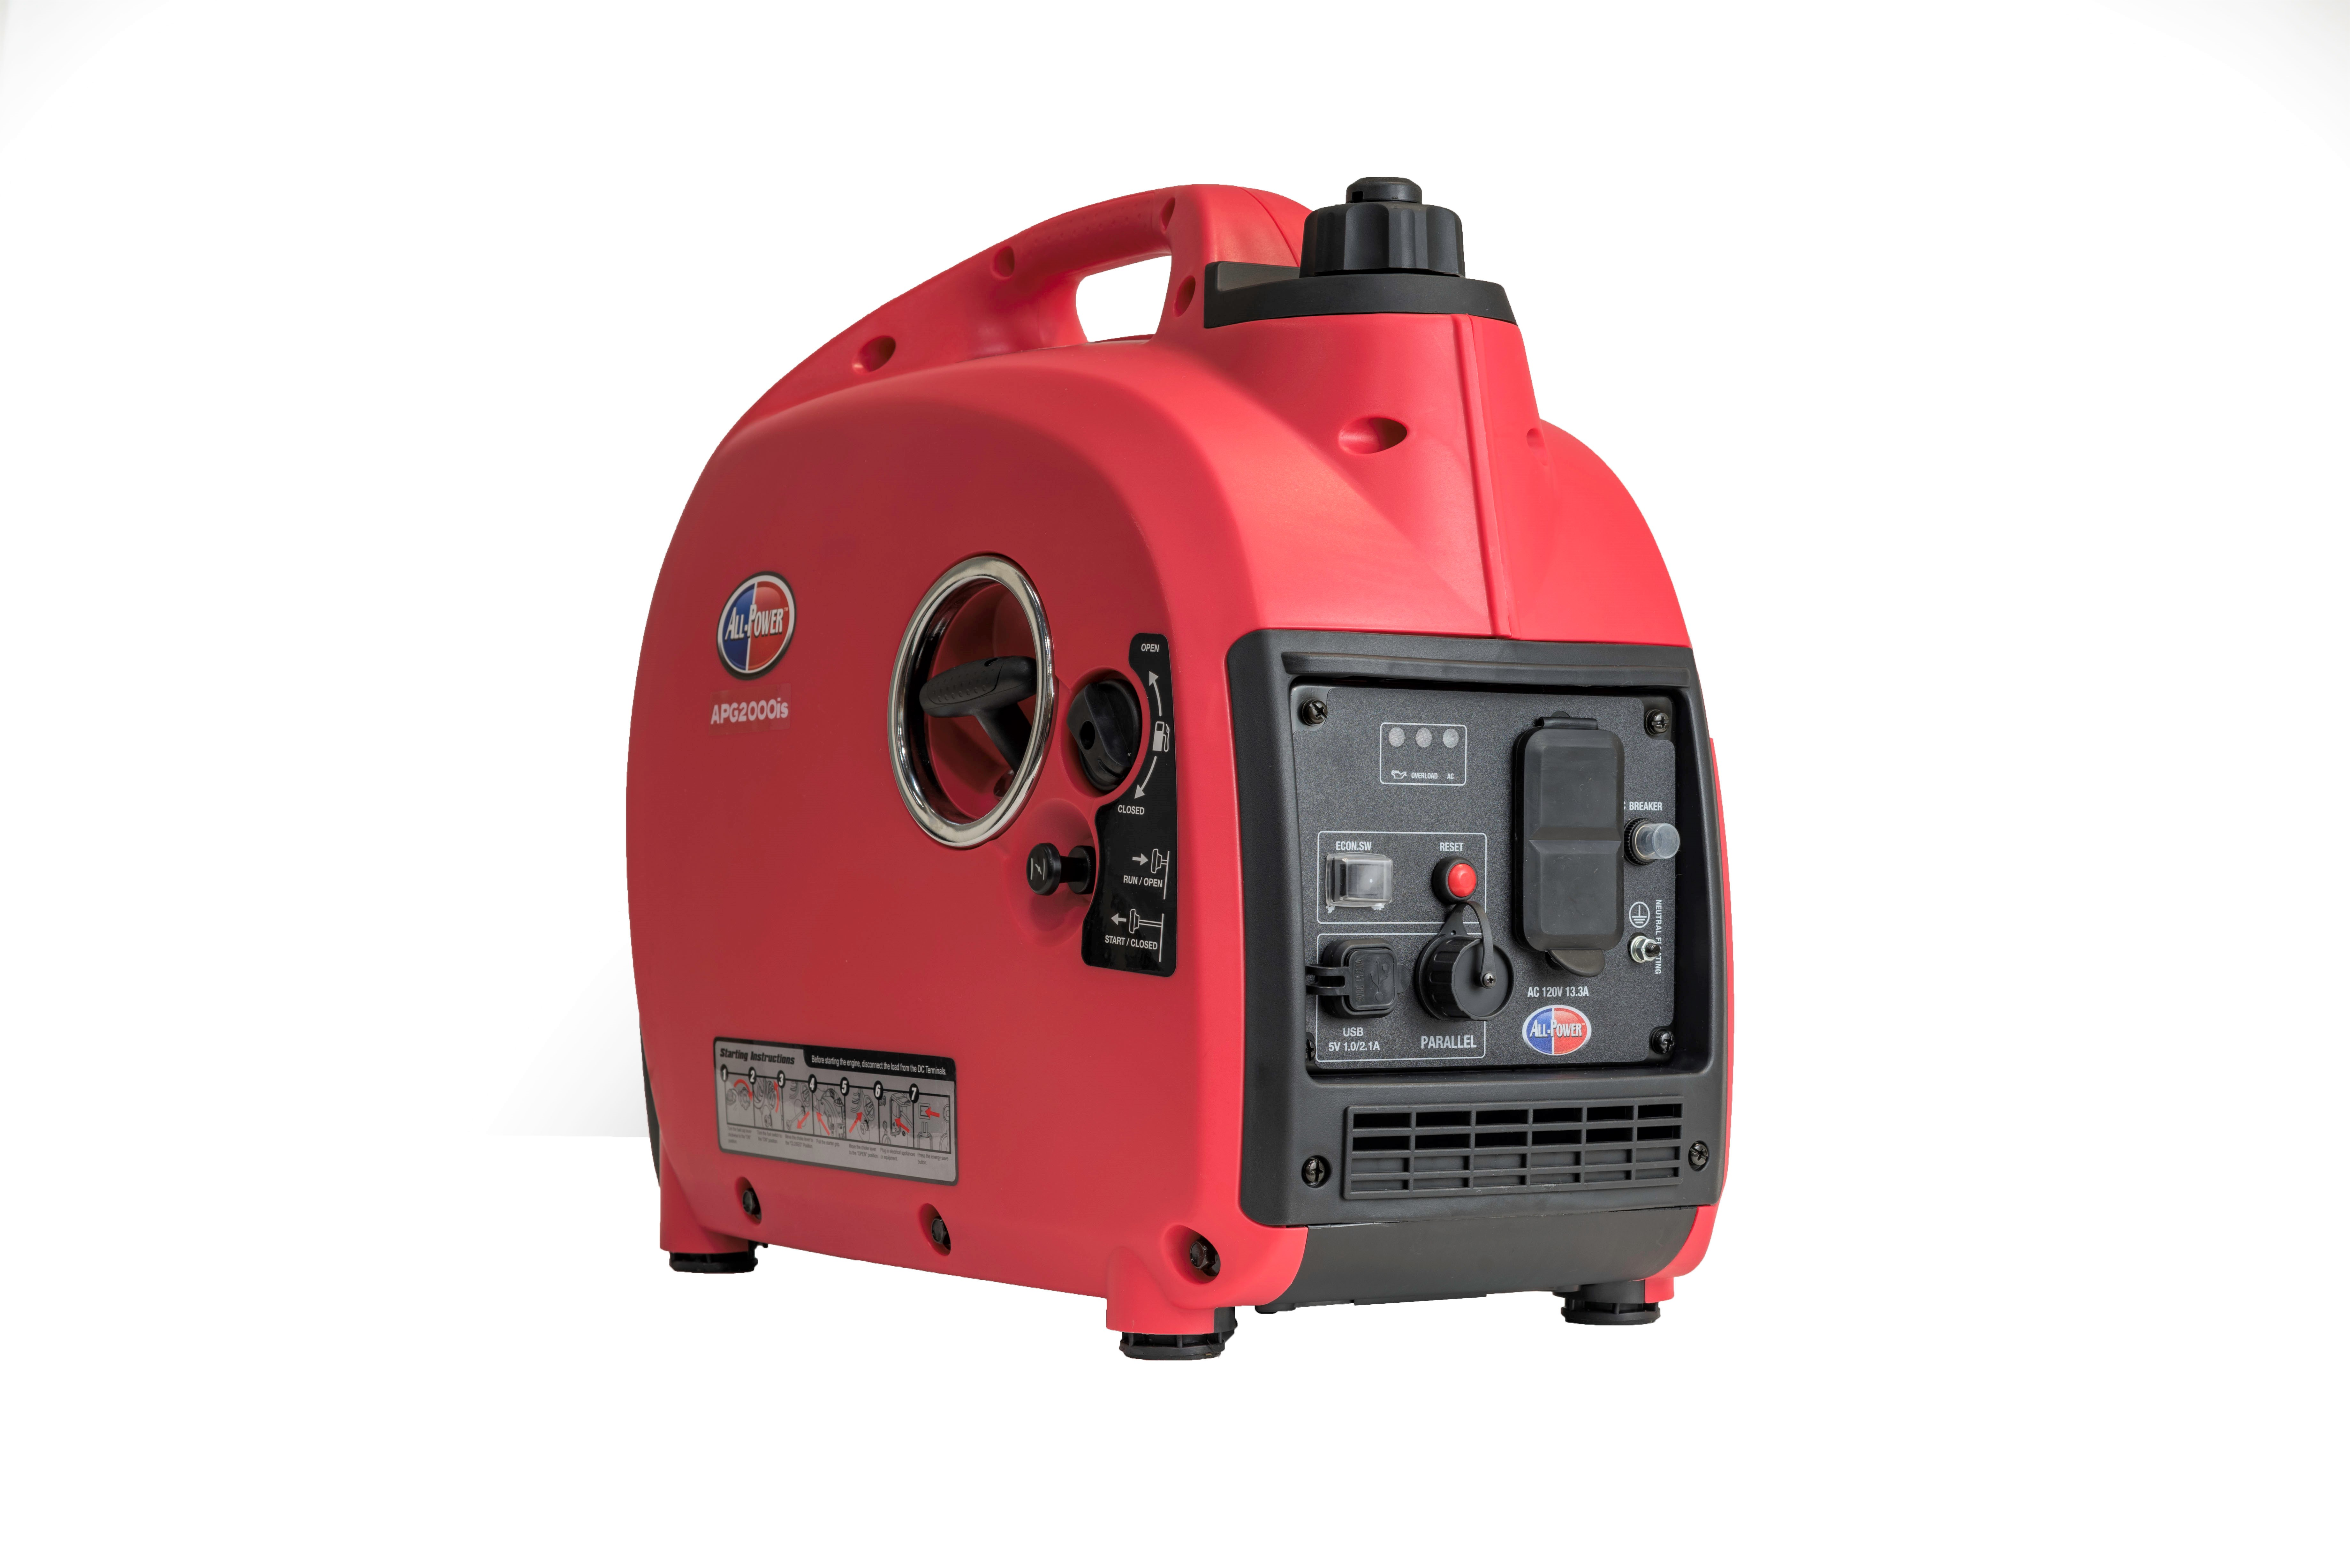 2000-Watt Gas Powered Portable Inverter Generator with Parallel Function Ready